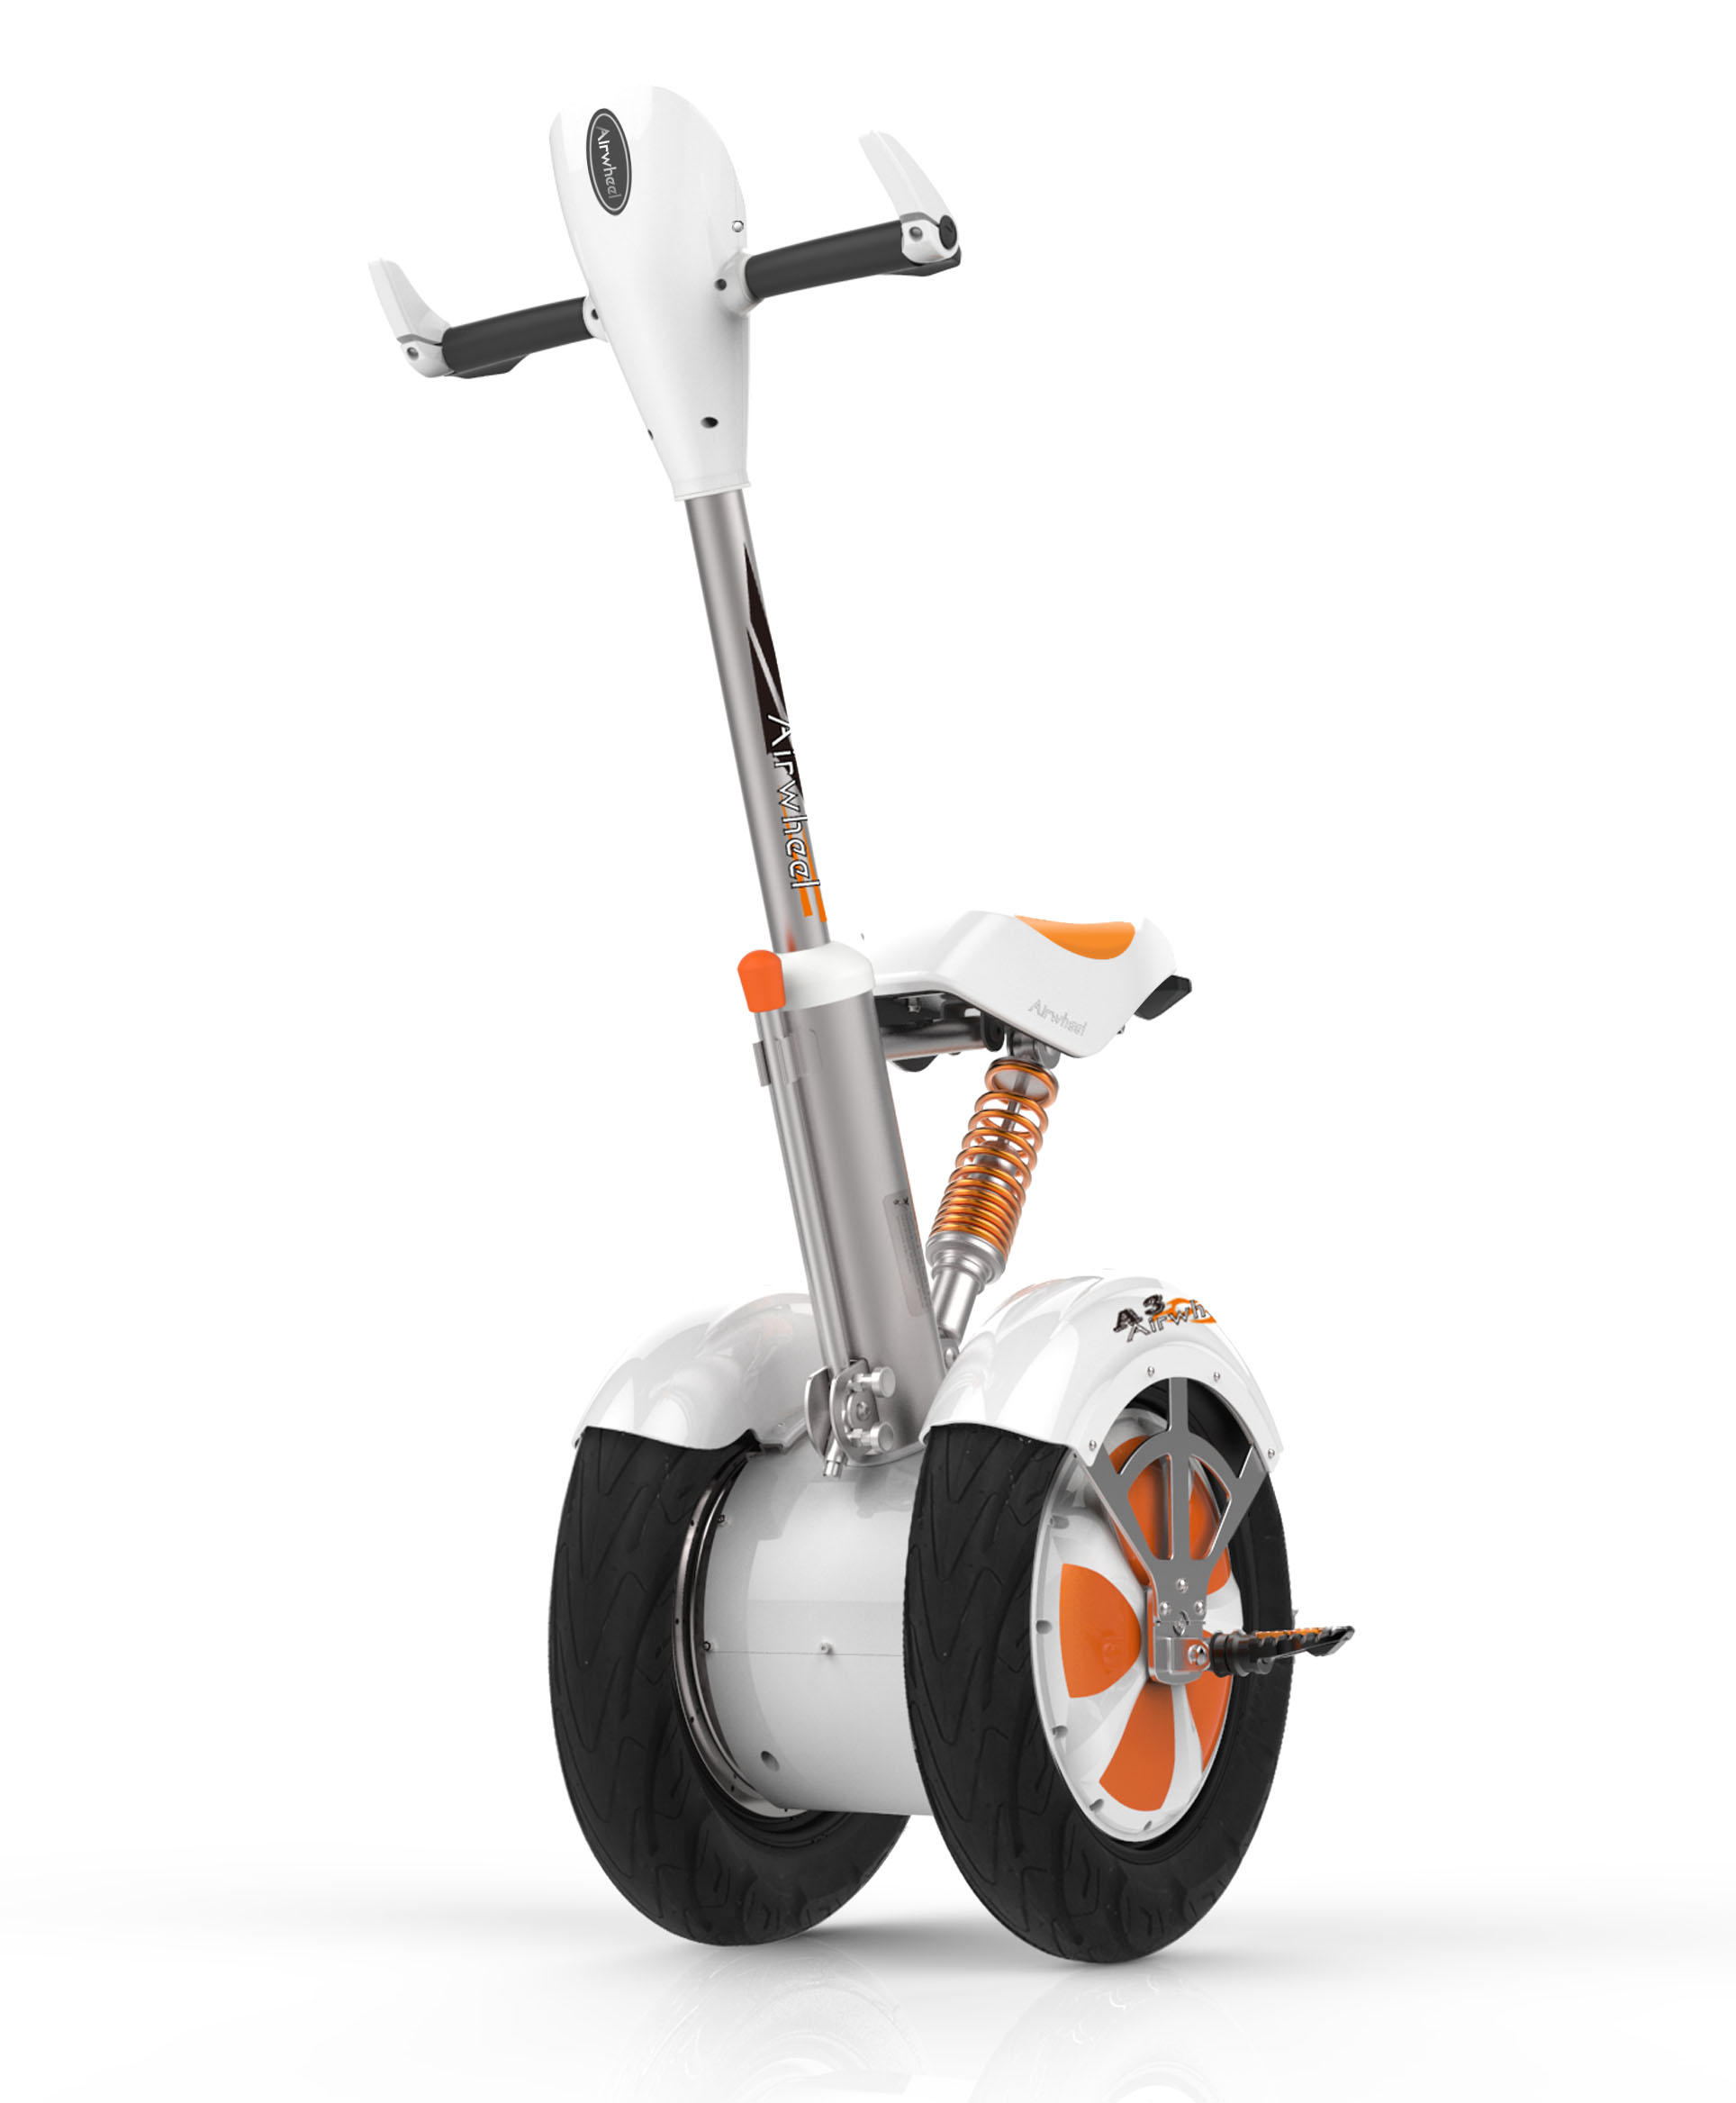 http://www.airwheel.net/images/Airwheel_1_A3.jpg